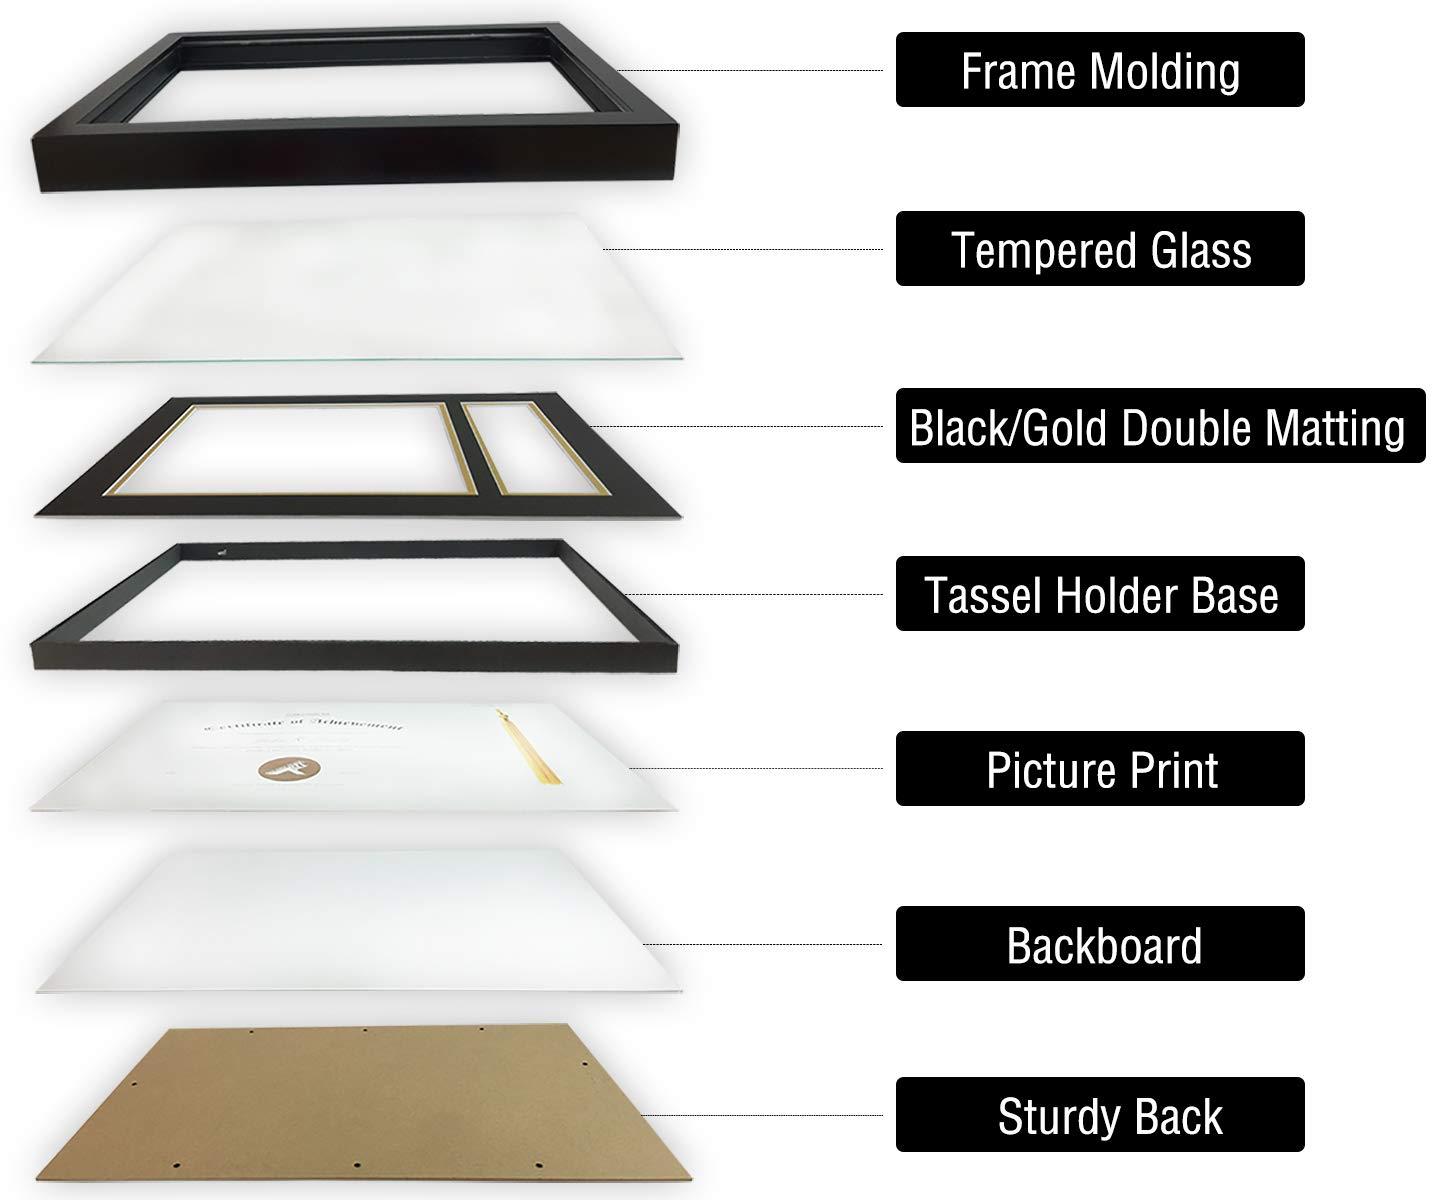 Black Over Gold Tassel Holder /& Real Glass Black GSA-G-2016BS-11175-02-SF0278 with Double Mat Golden State Art Diploma Tassel Shadow Box 11x17.5 Frame for 8.5x11 Document//Certificate